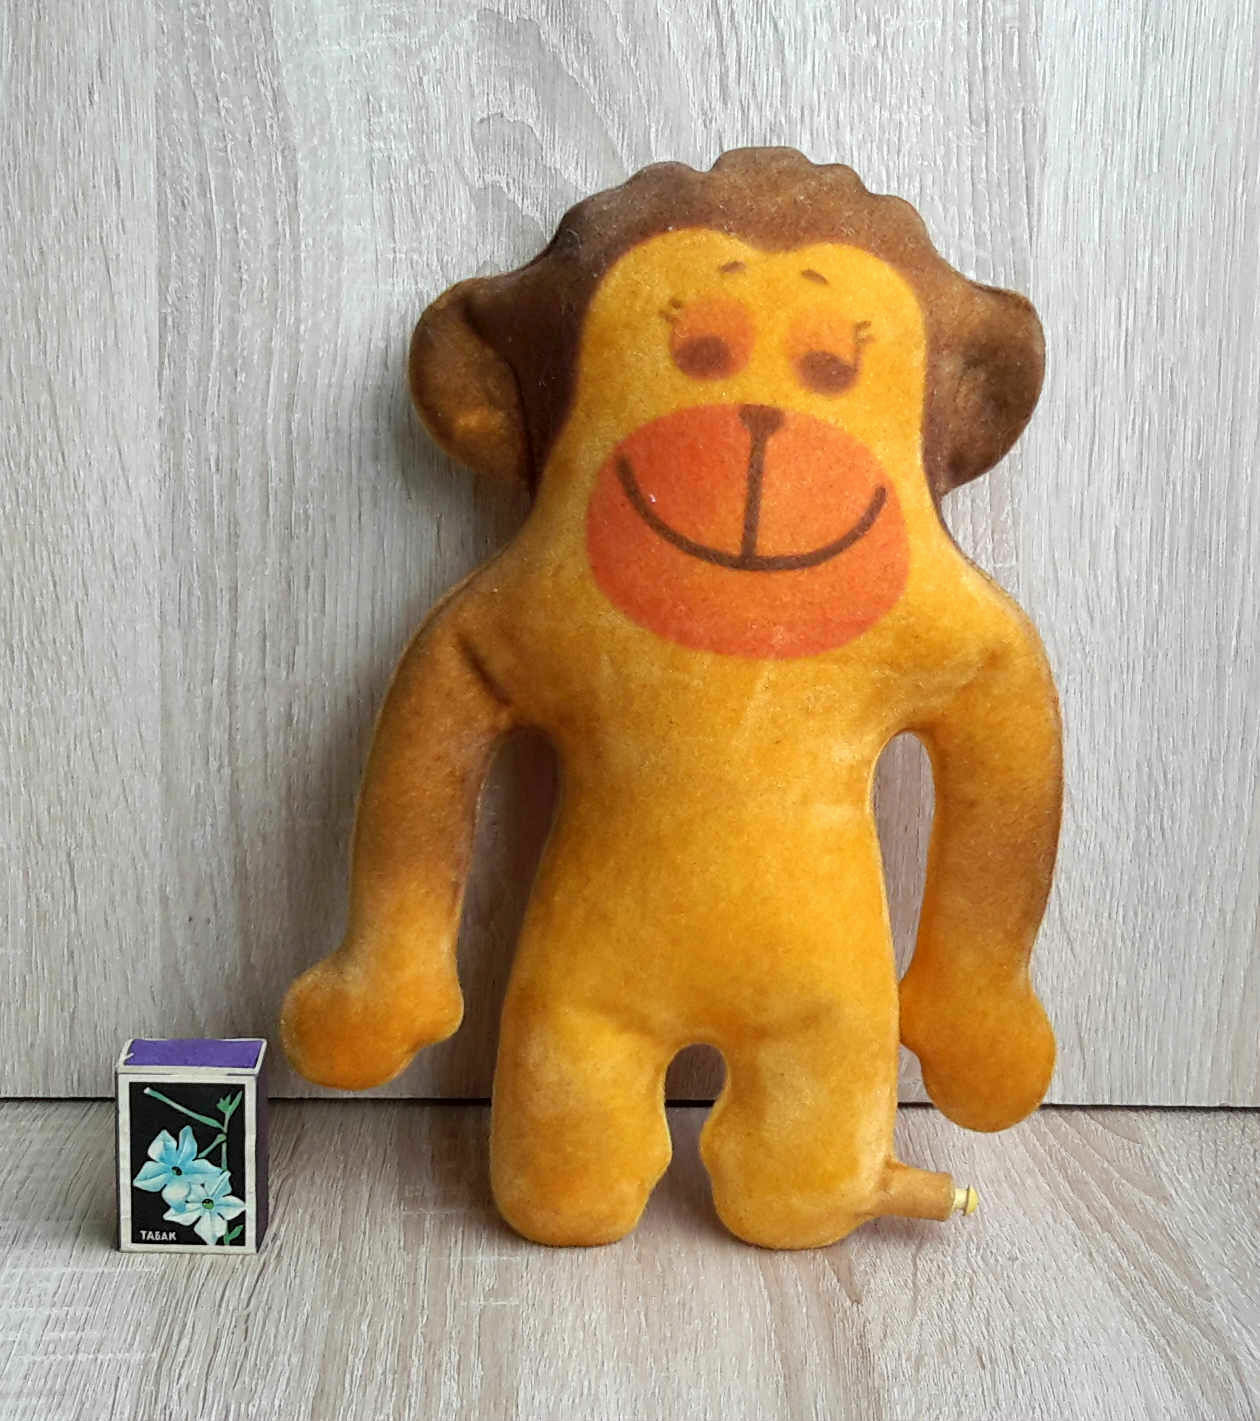 1970's USSR Soviet Estonian INFLATABLE Toy PLUSH Polymer MONKEY